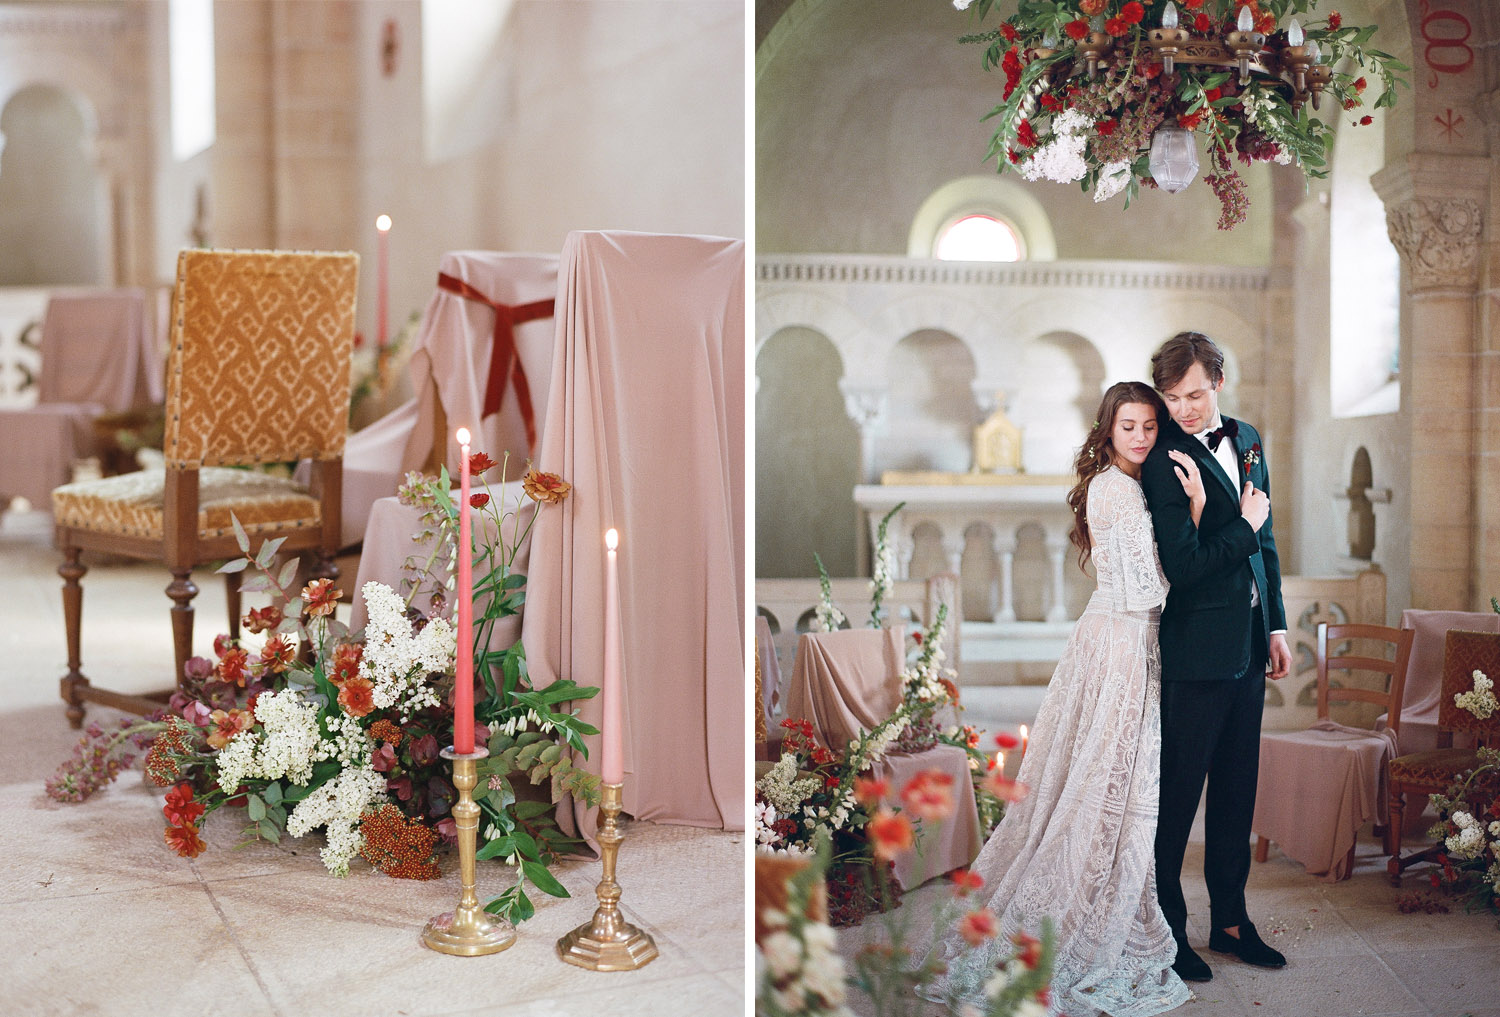 Burgundy and cream florals decorate a wedding ceremony at Chateau de Varennes; Sylvie Gil Photography